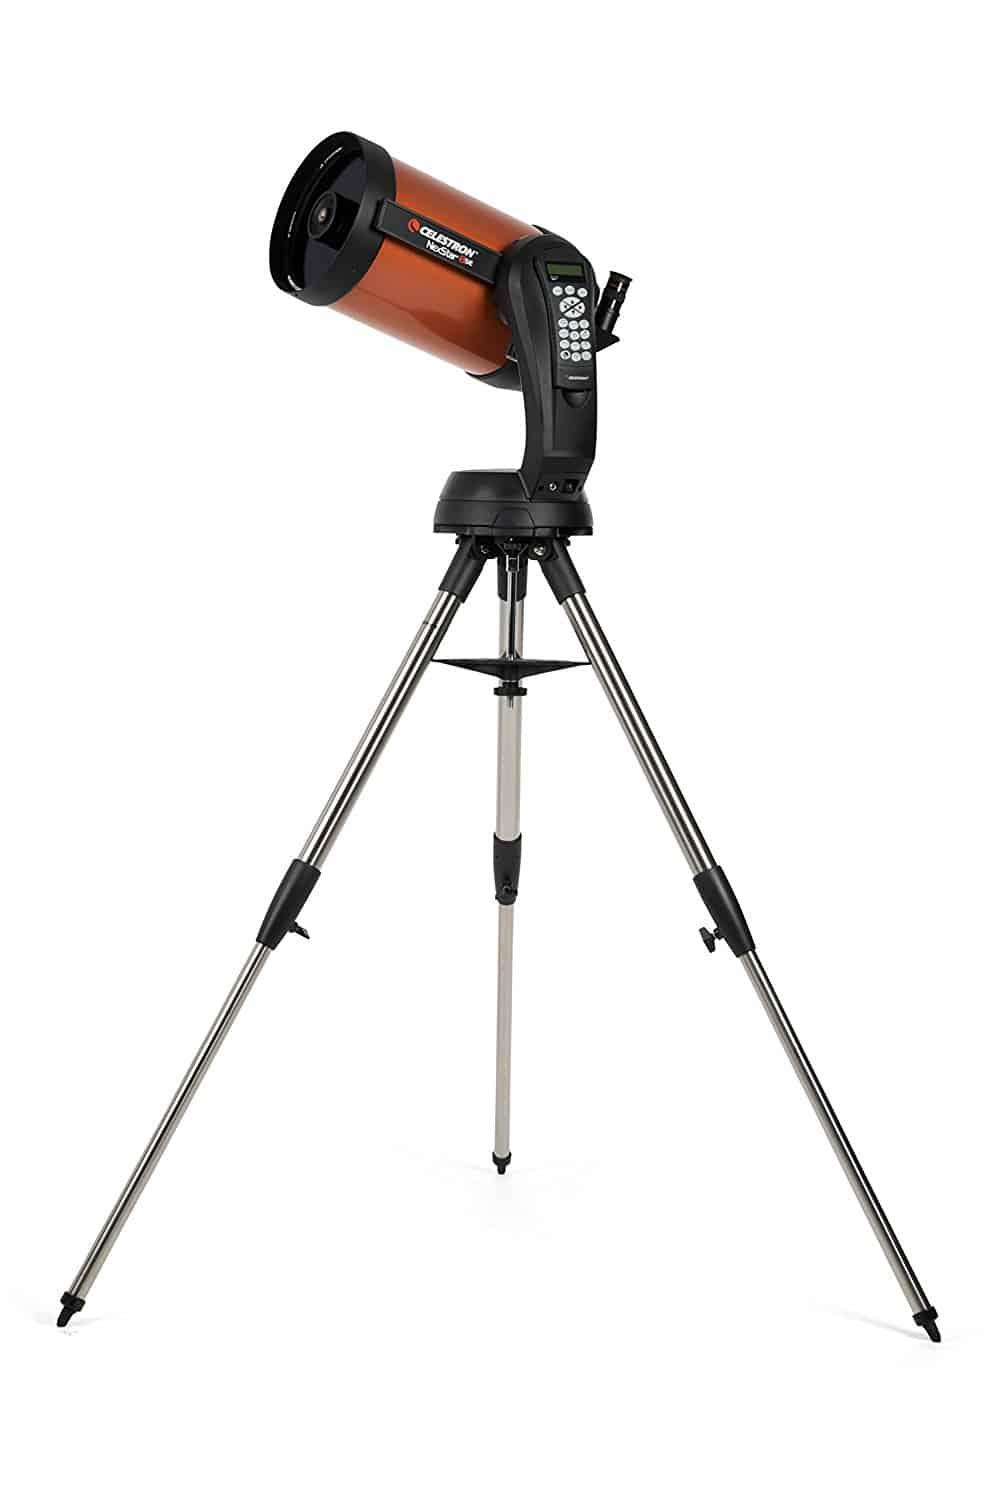 telescops reviews